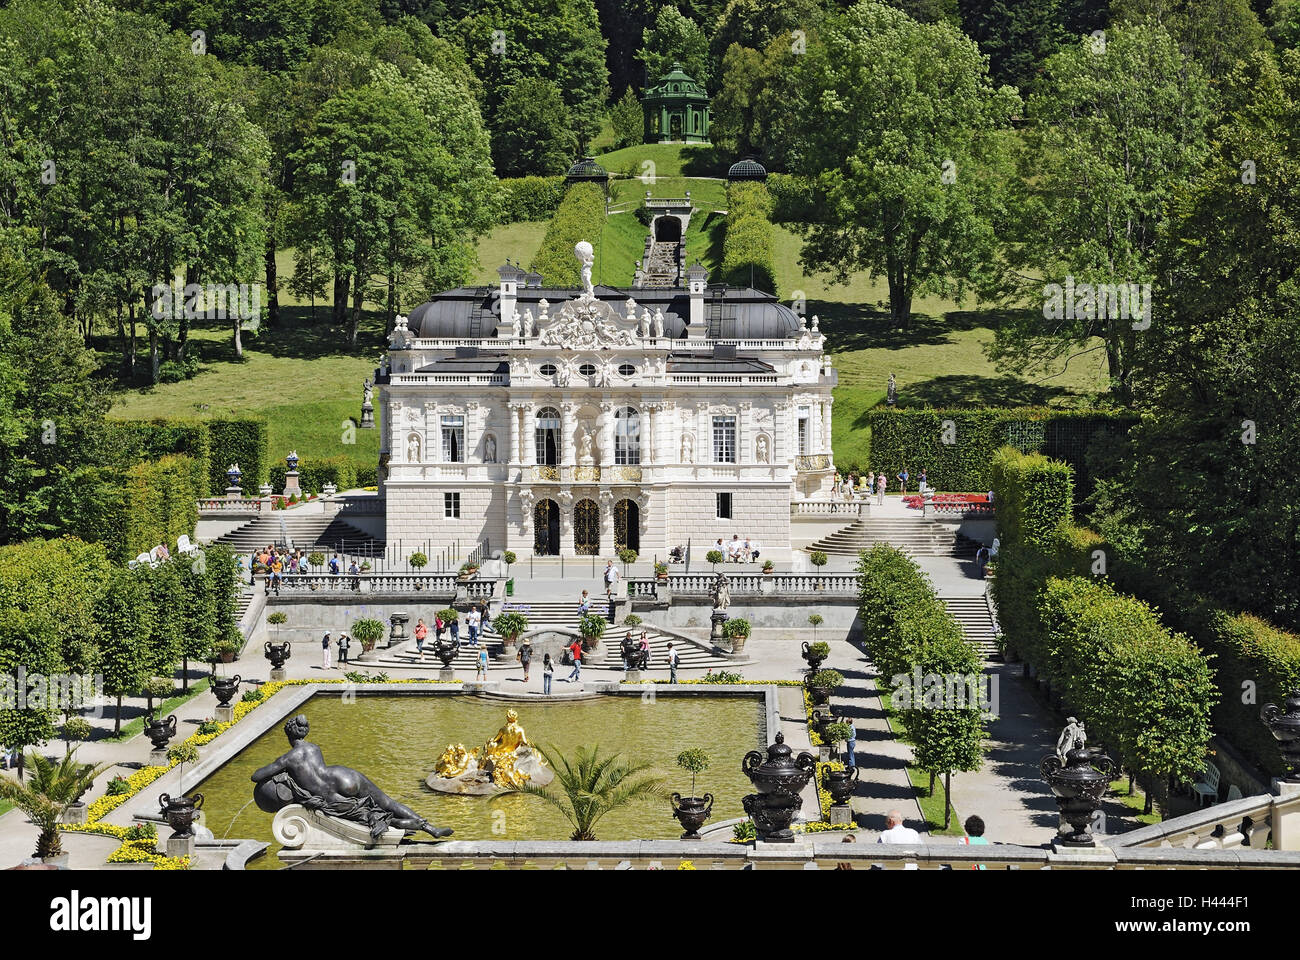 Lock gentle court, garden, water cymbal, statues, gold, patches, stairs, trees, cascade, person, Germany, Bavarians, - Stock Image